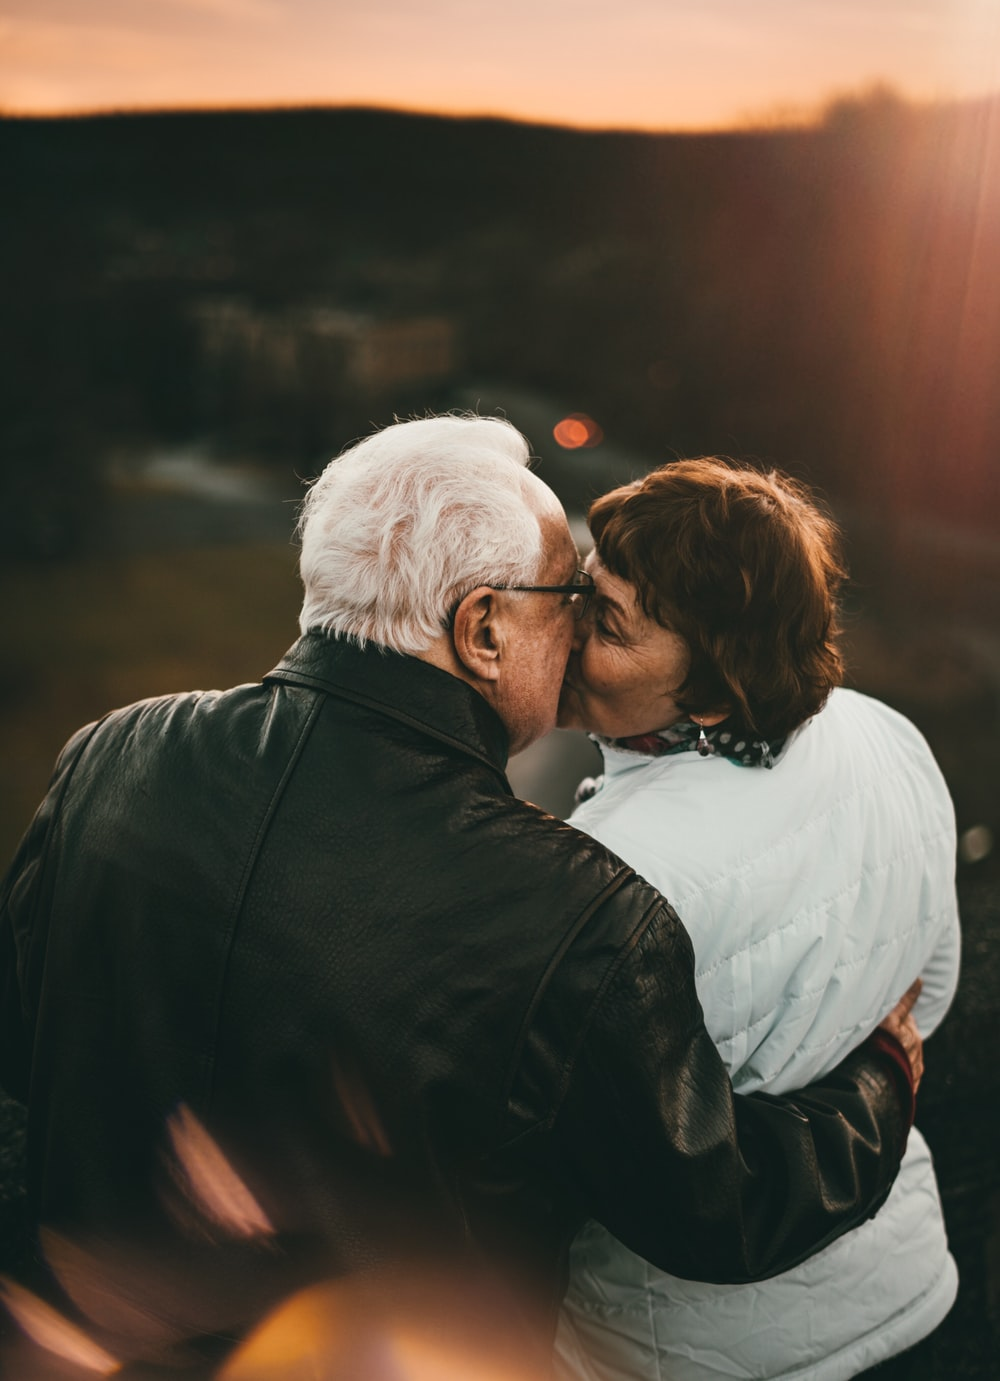 selective focus photography of kissing man and woman